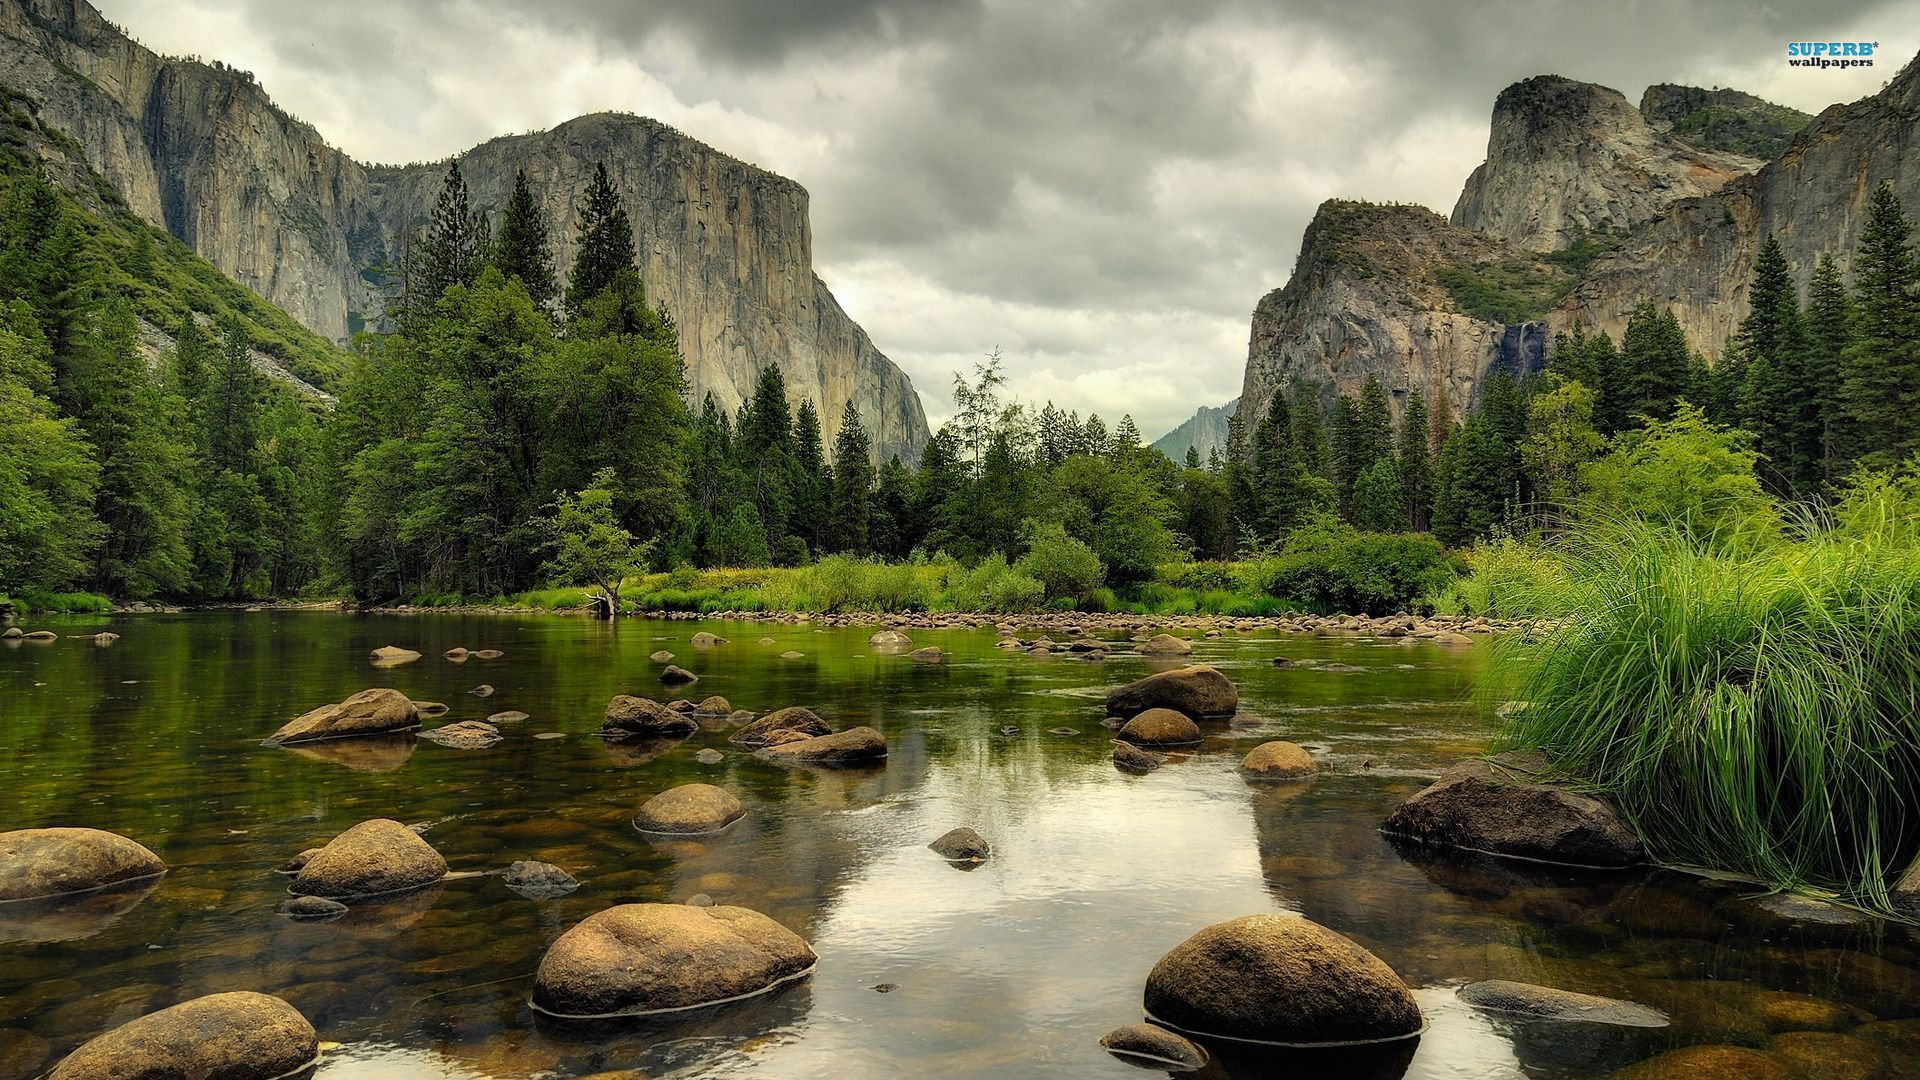 Yosemite National Park Wallpapers